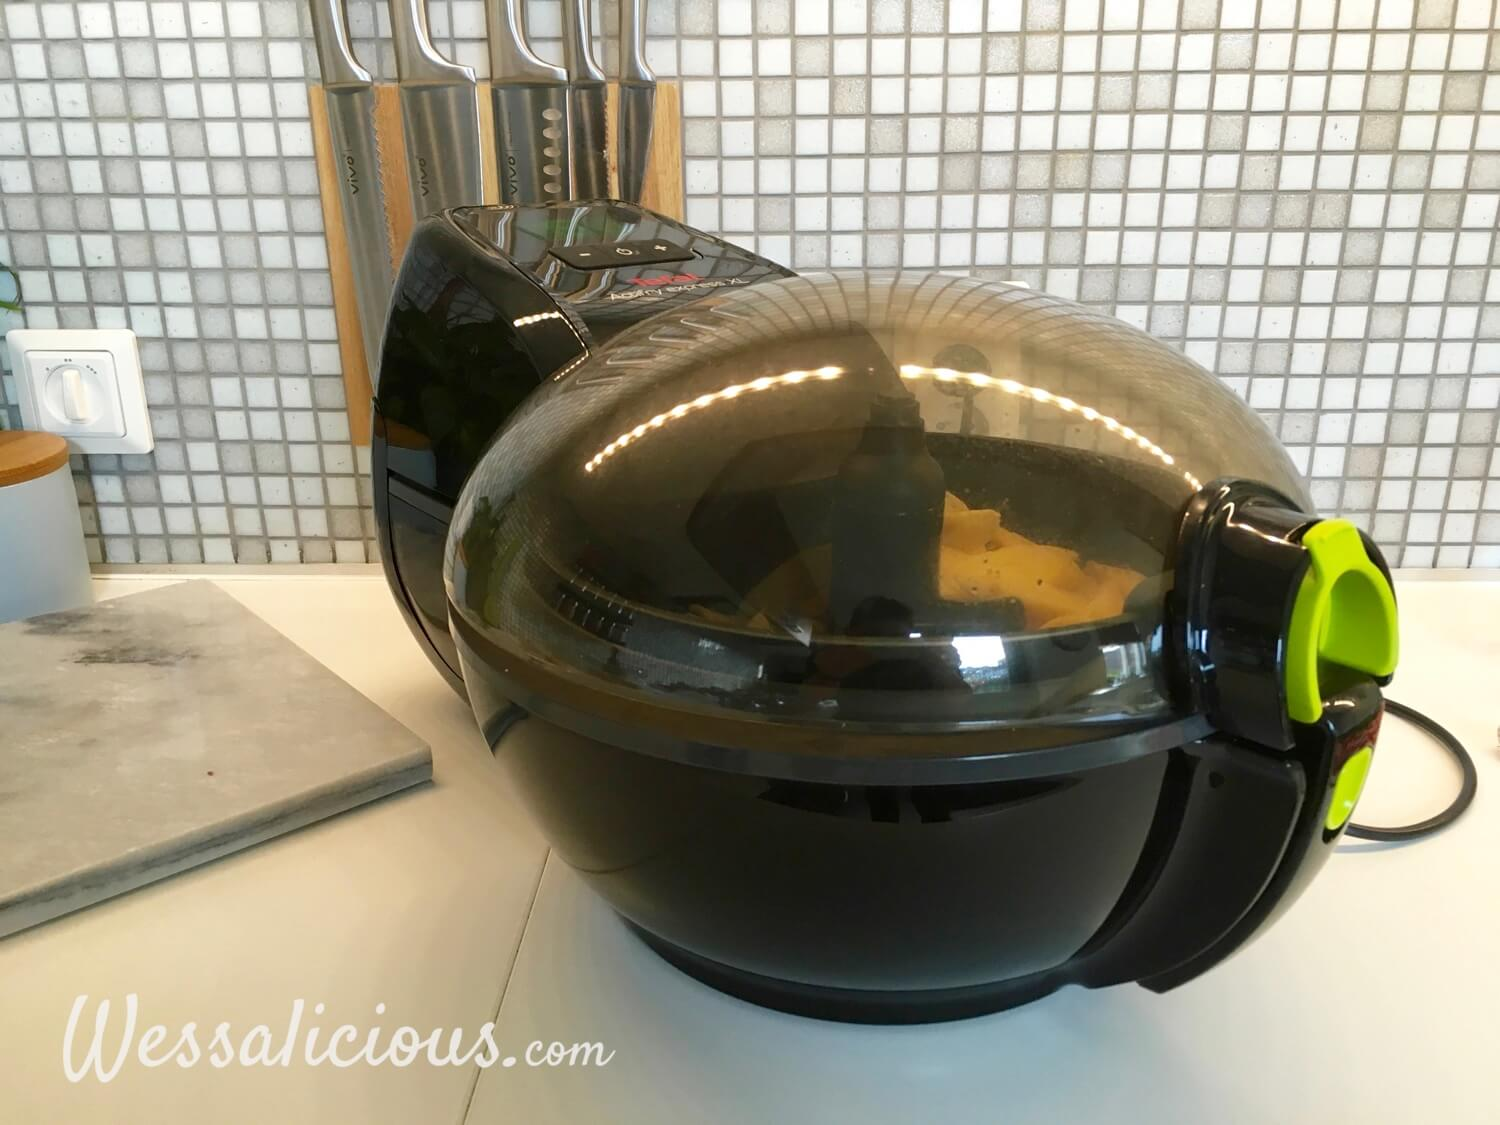 Actifry express XL review